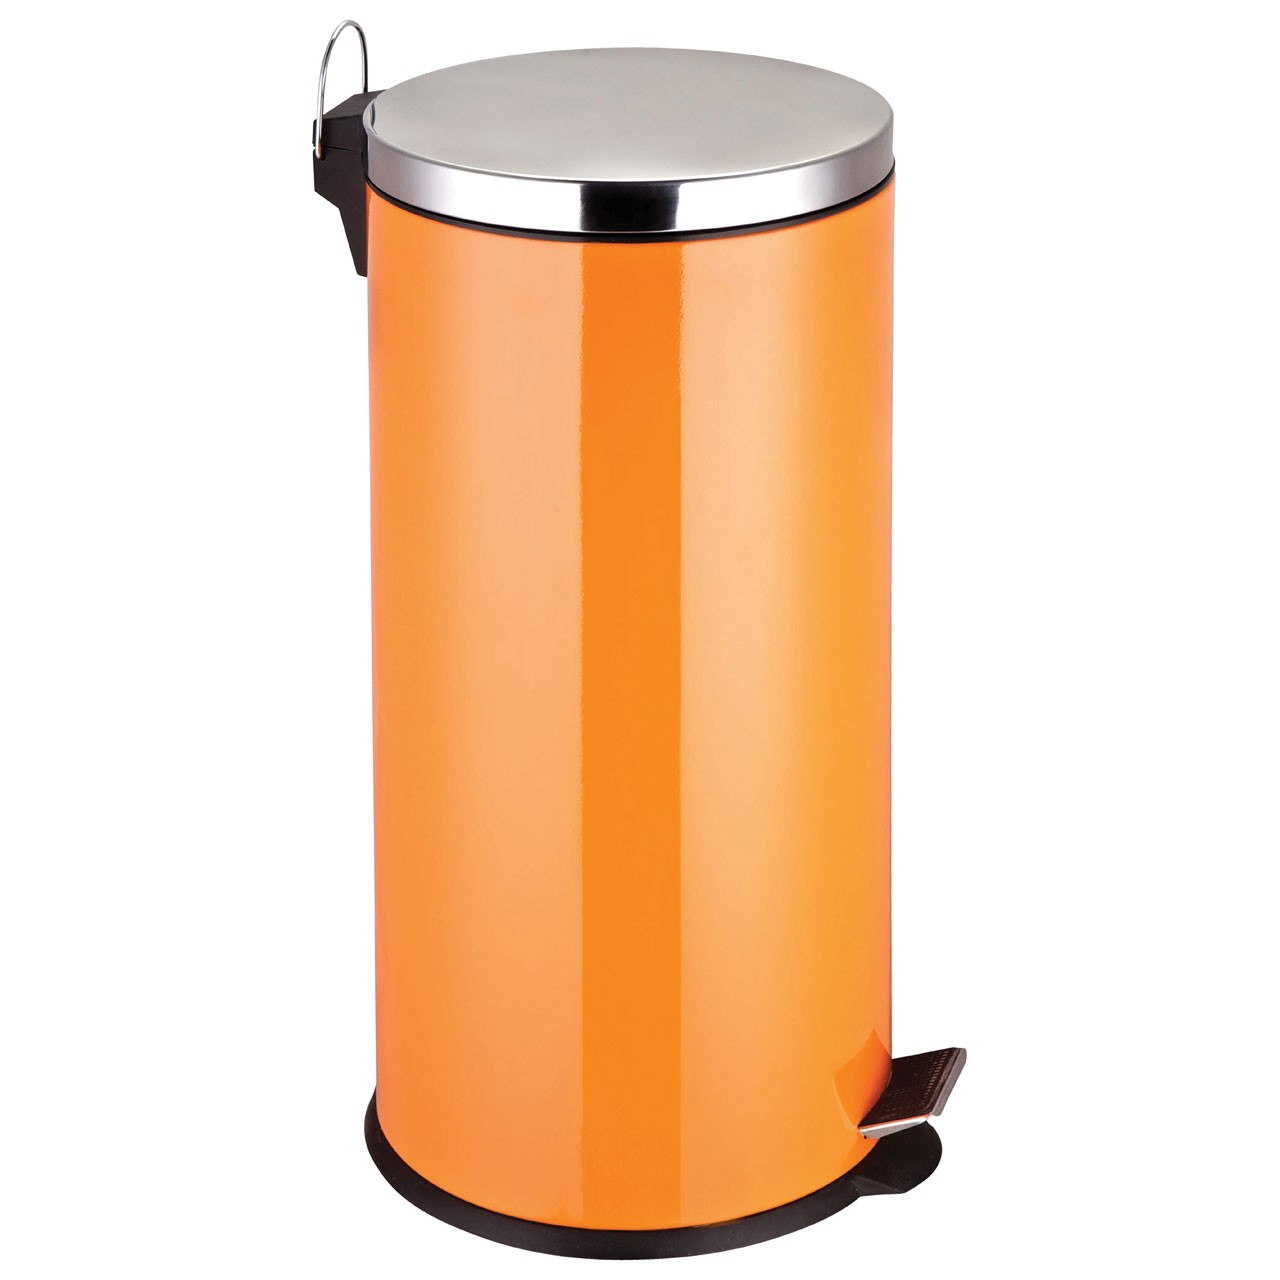 30 L Stainless Steel Pedal Bin - Orange